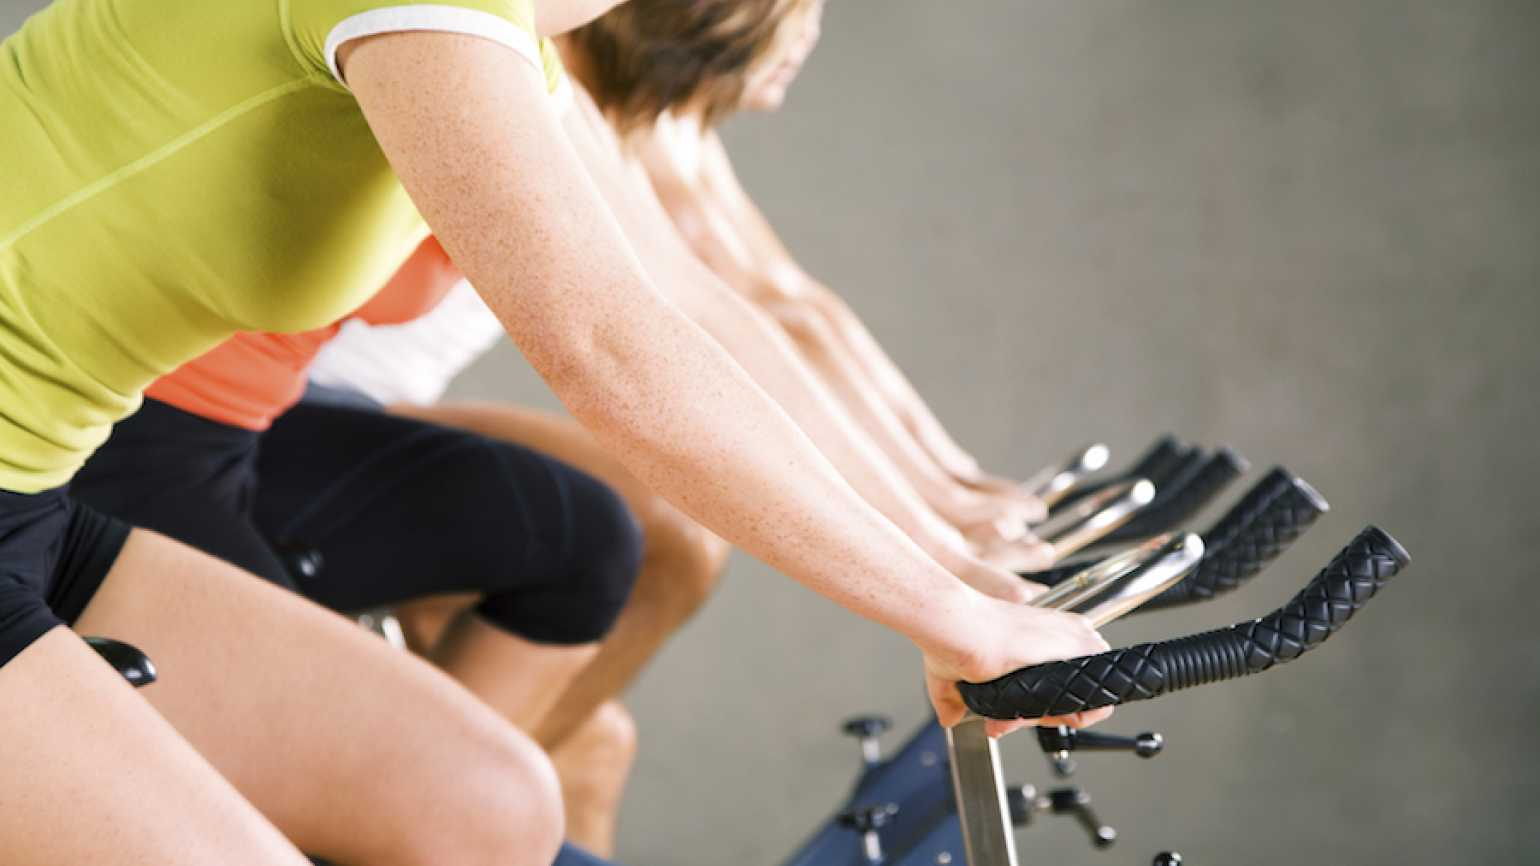 Two sisters support each other at a SoulCycle spinning class.